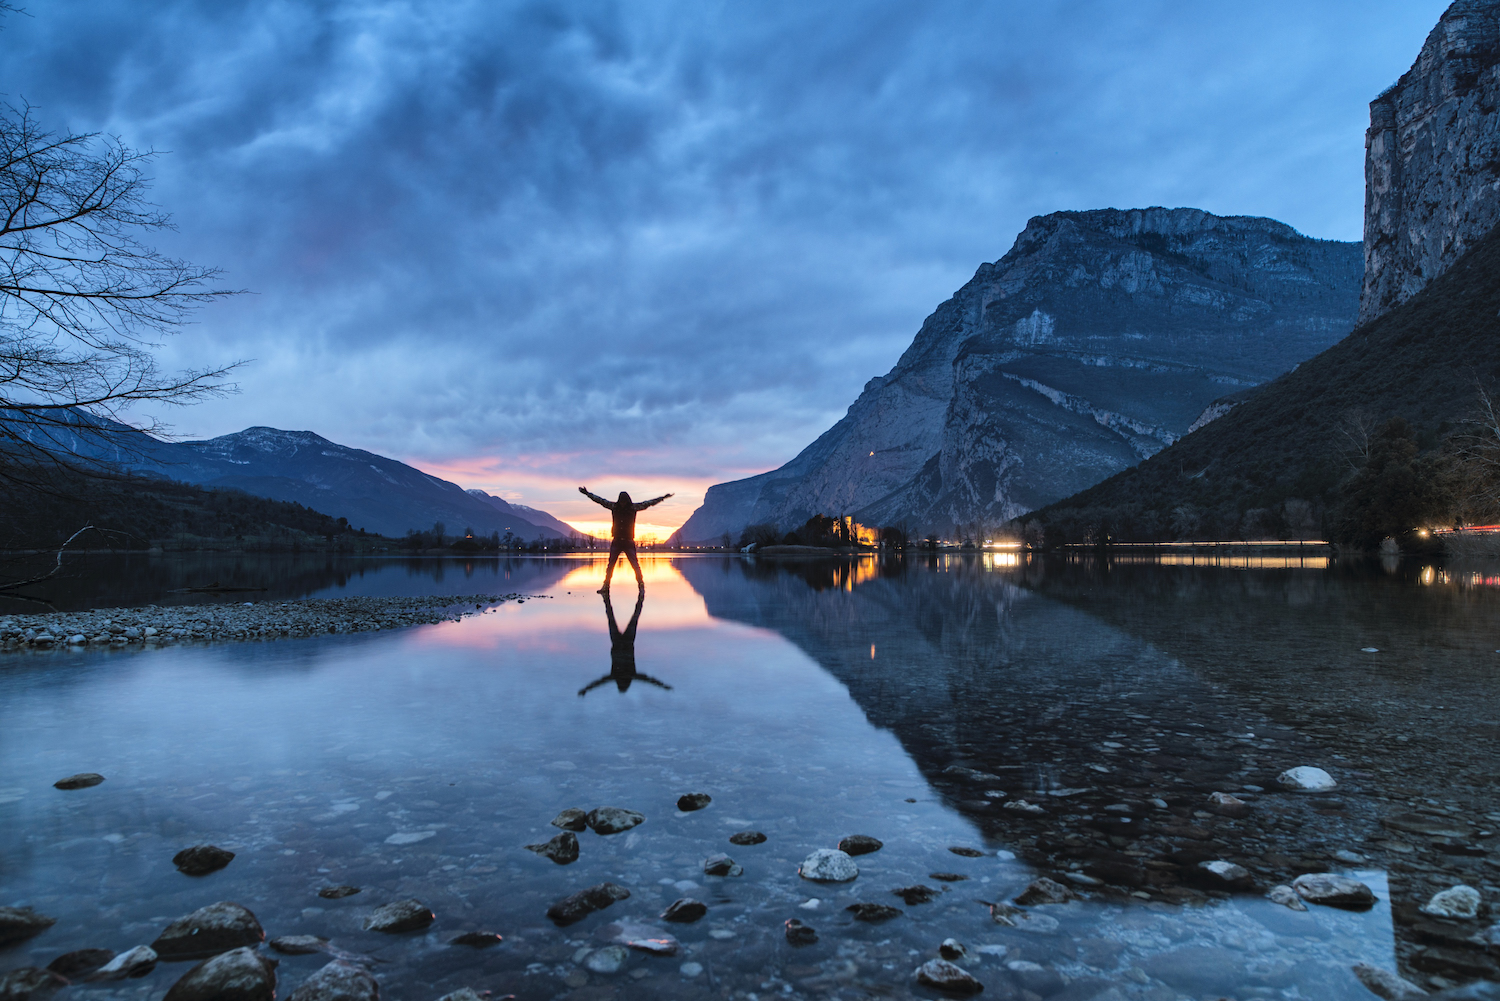 Blue hour on Lake Toblino, Northern Italy